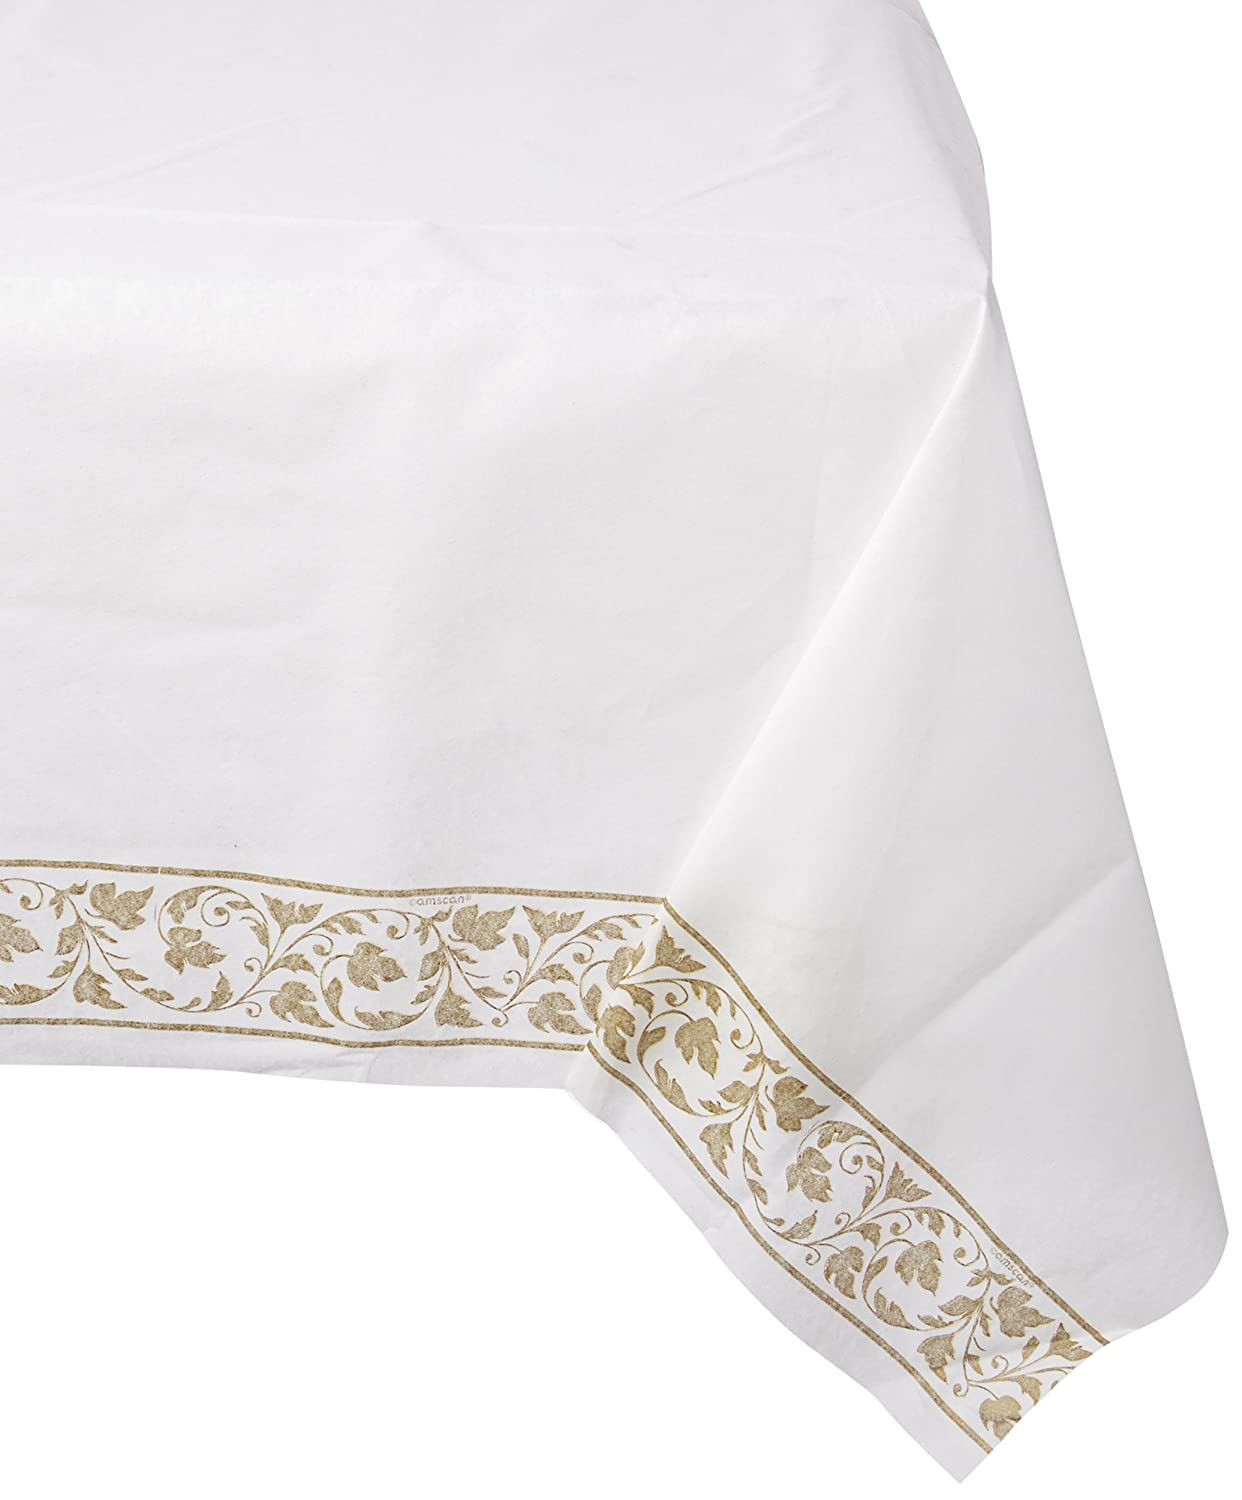 Amscan Premium Quality Table Cover | 54 x 108 | White with Gold Trim | Party Supply |6 ct.